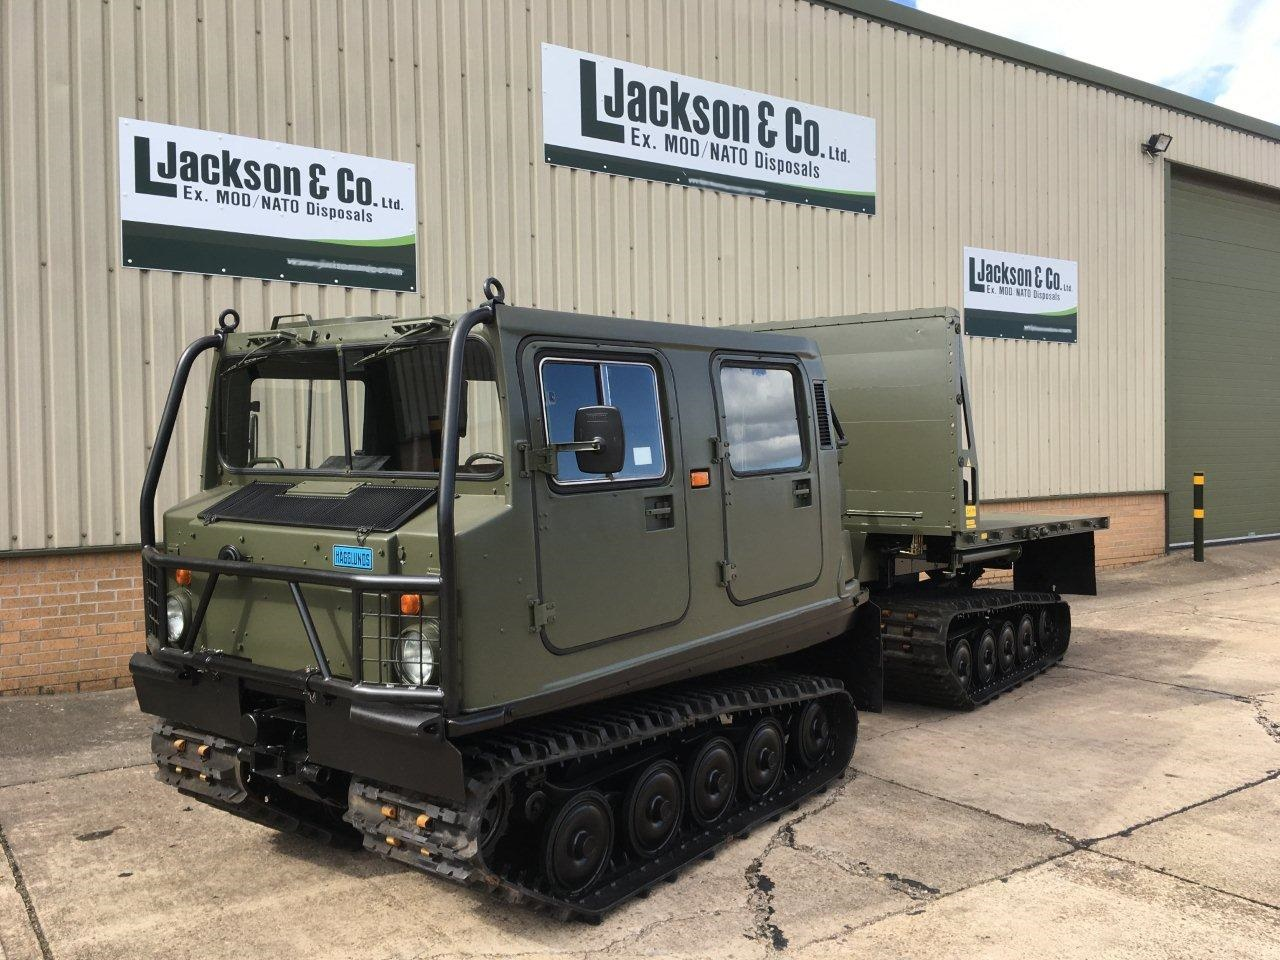 Hagglunds Bv206 Load Carrier with Crane for sale